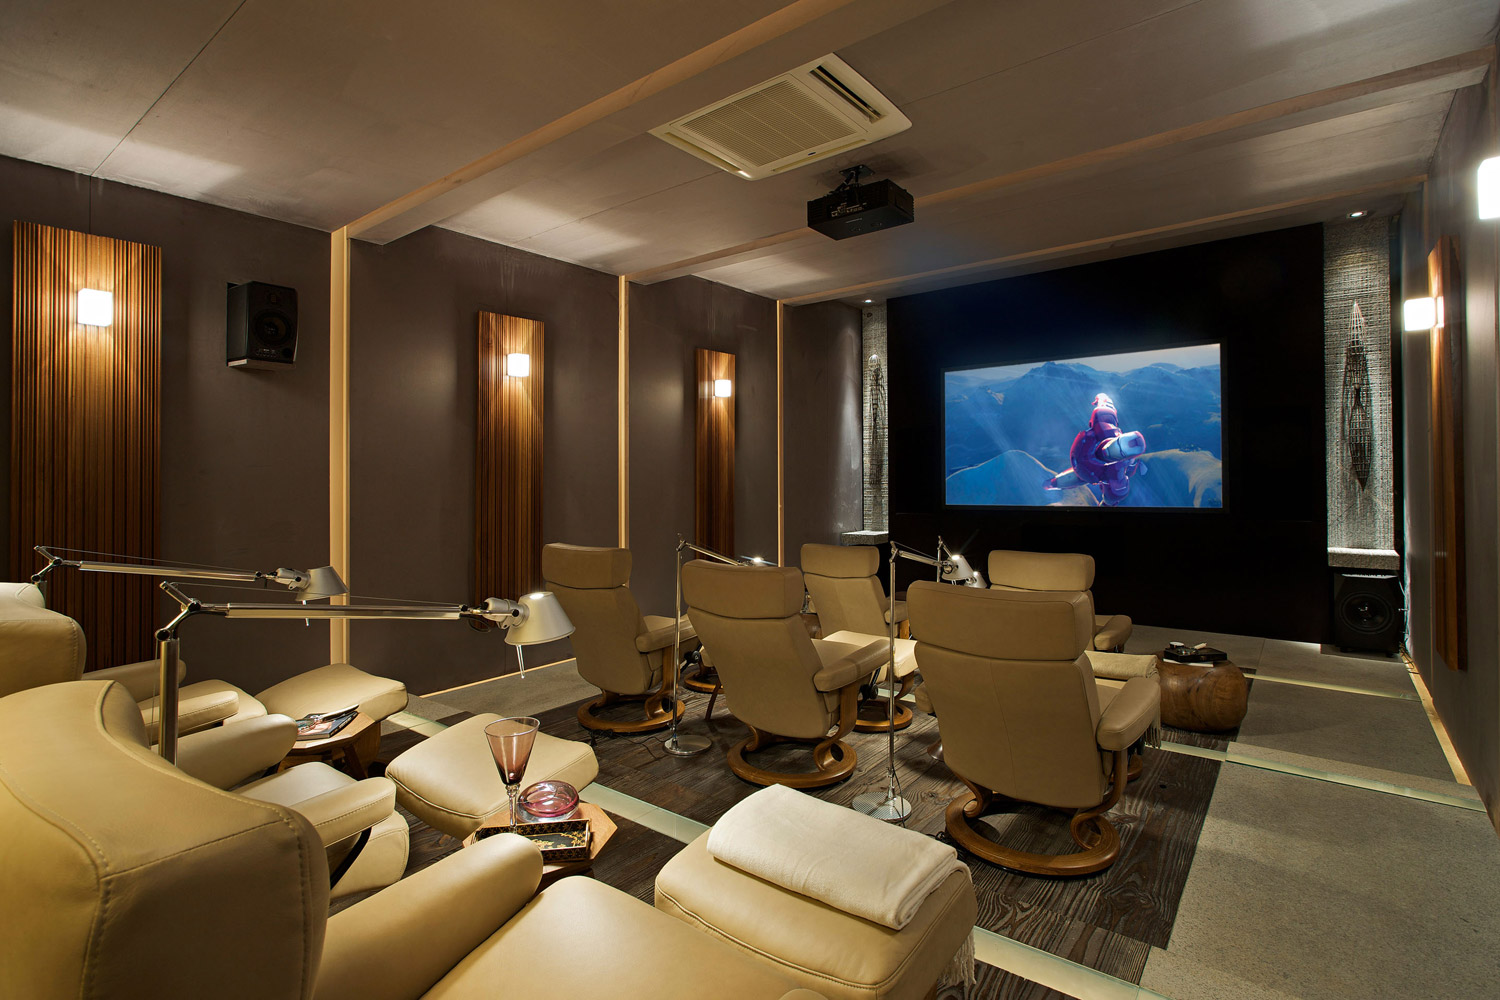 Casa Cor Home Cinema 2009 Wsdg